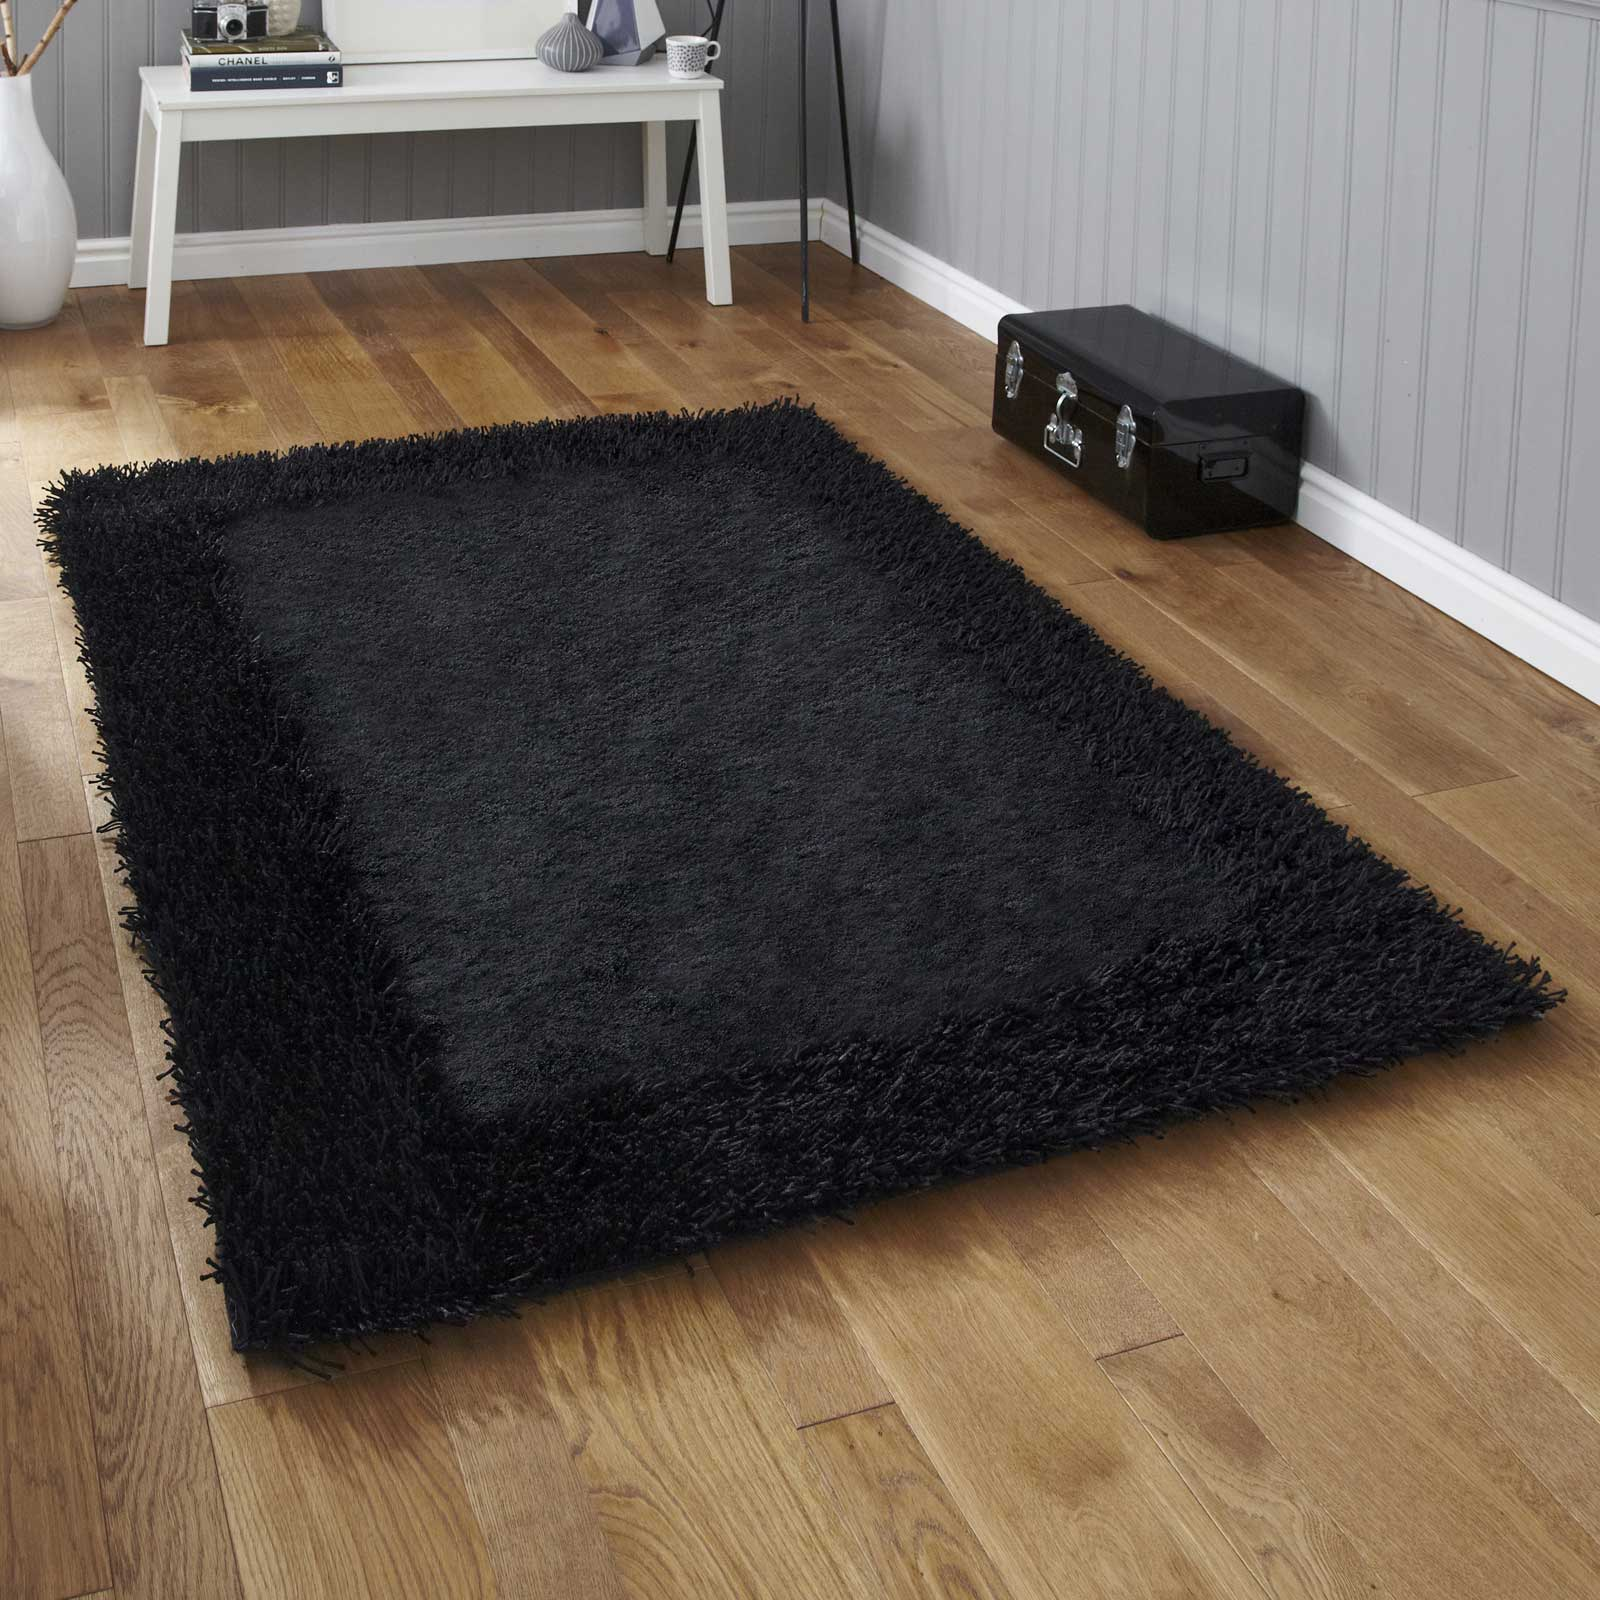 Sable Two Shiney Shaggy Rugs in Black